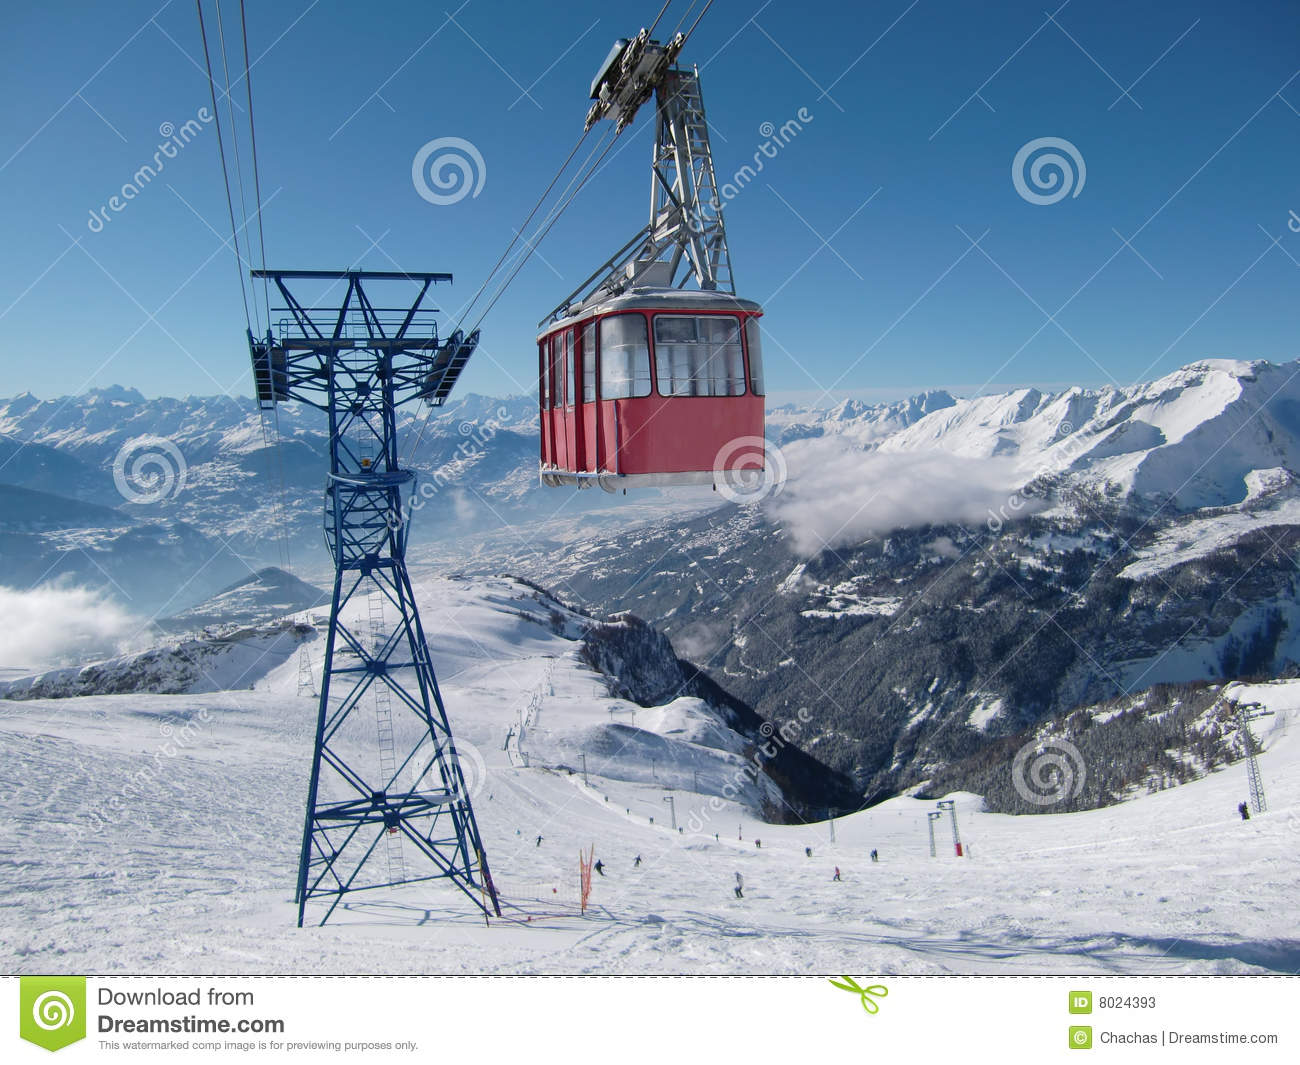 3d Moving Animation Wallpaper Download Cable Car In Swiss Alps Stock Photos Image 8024393